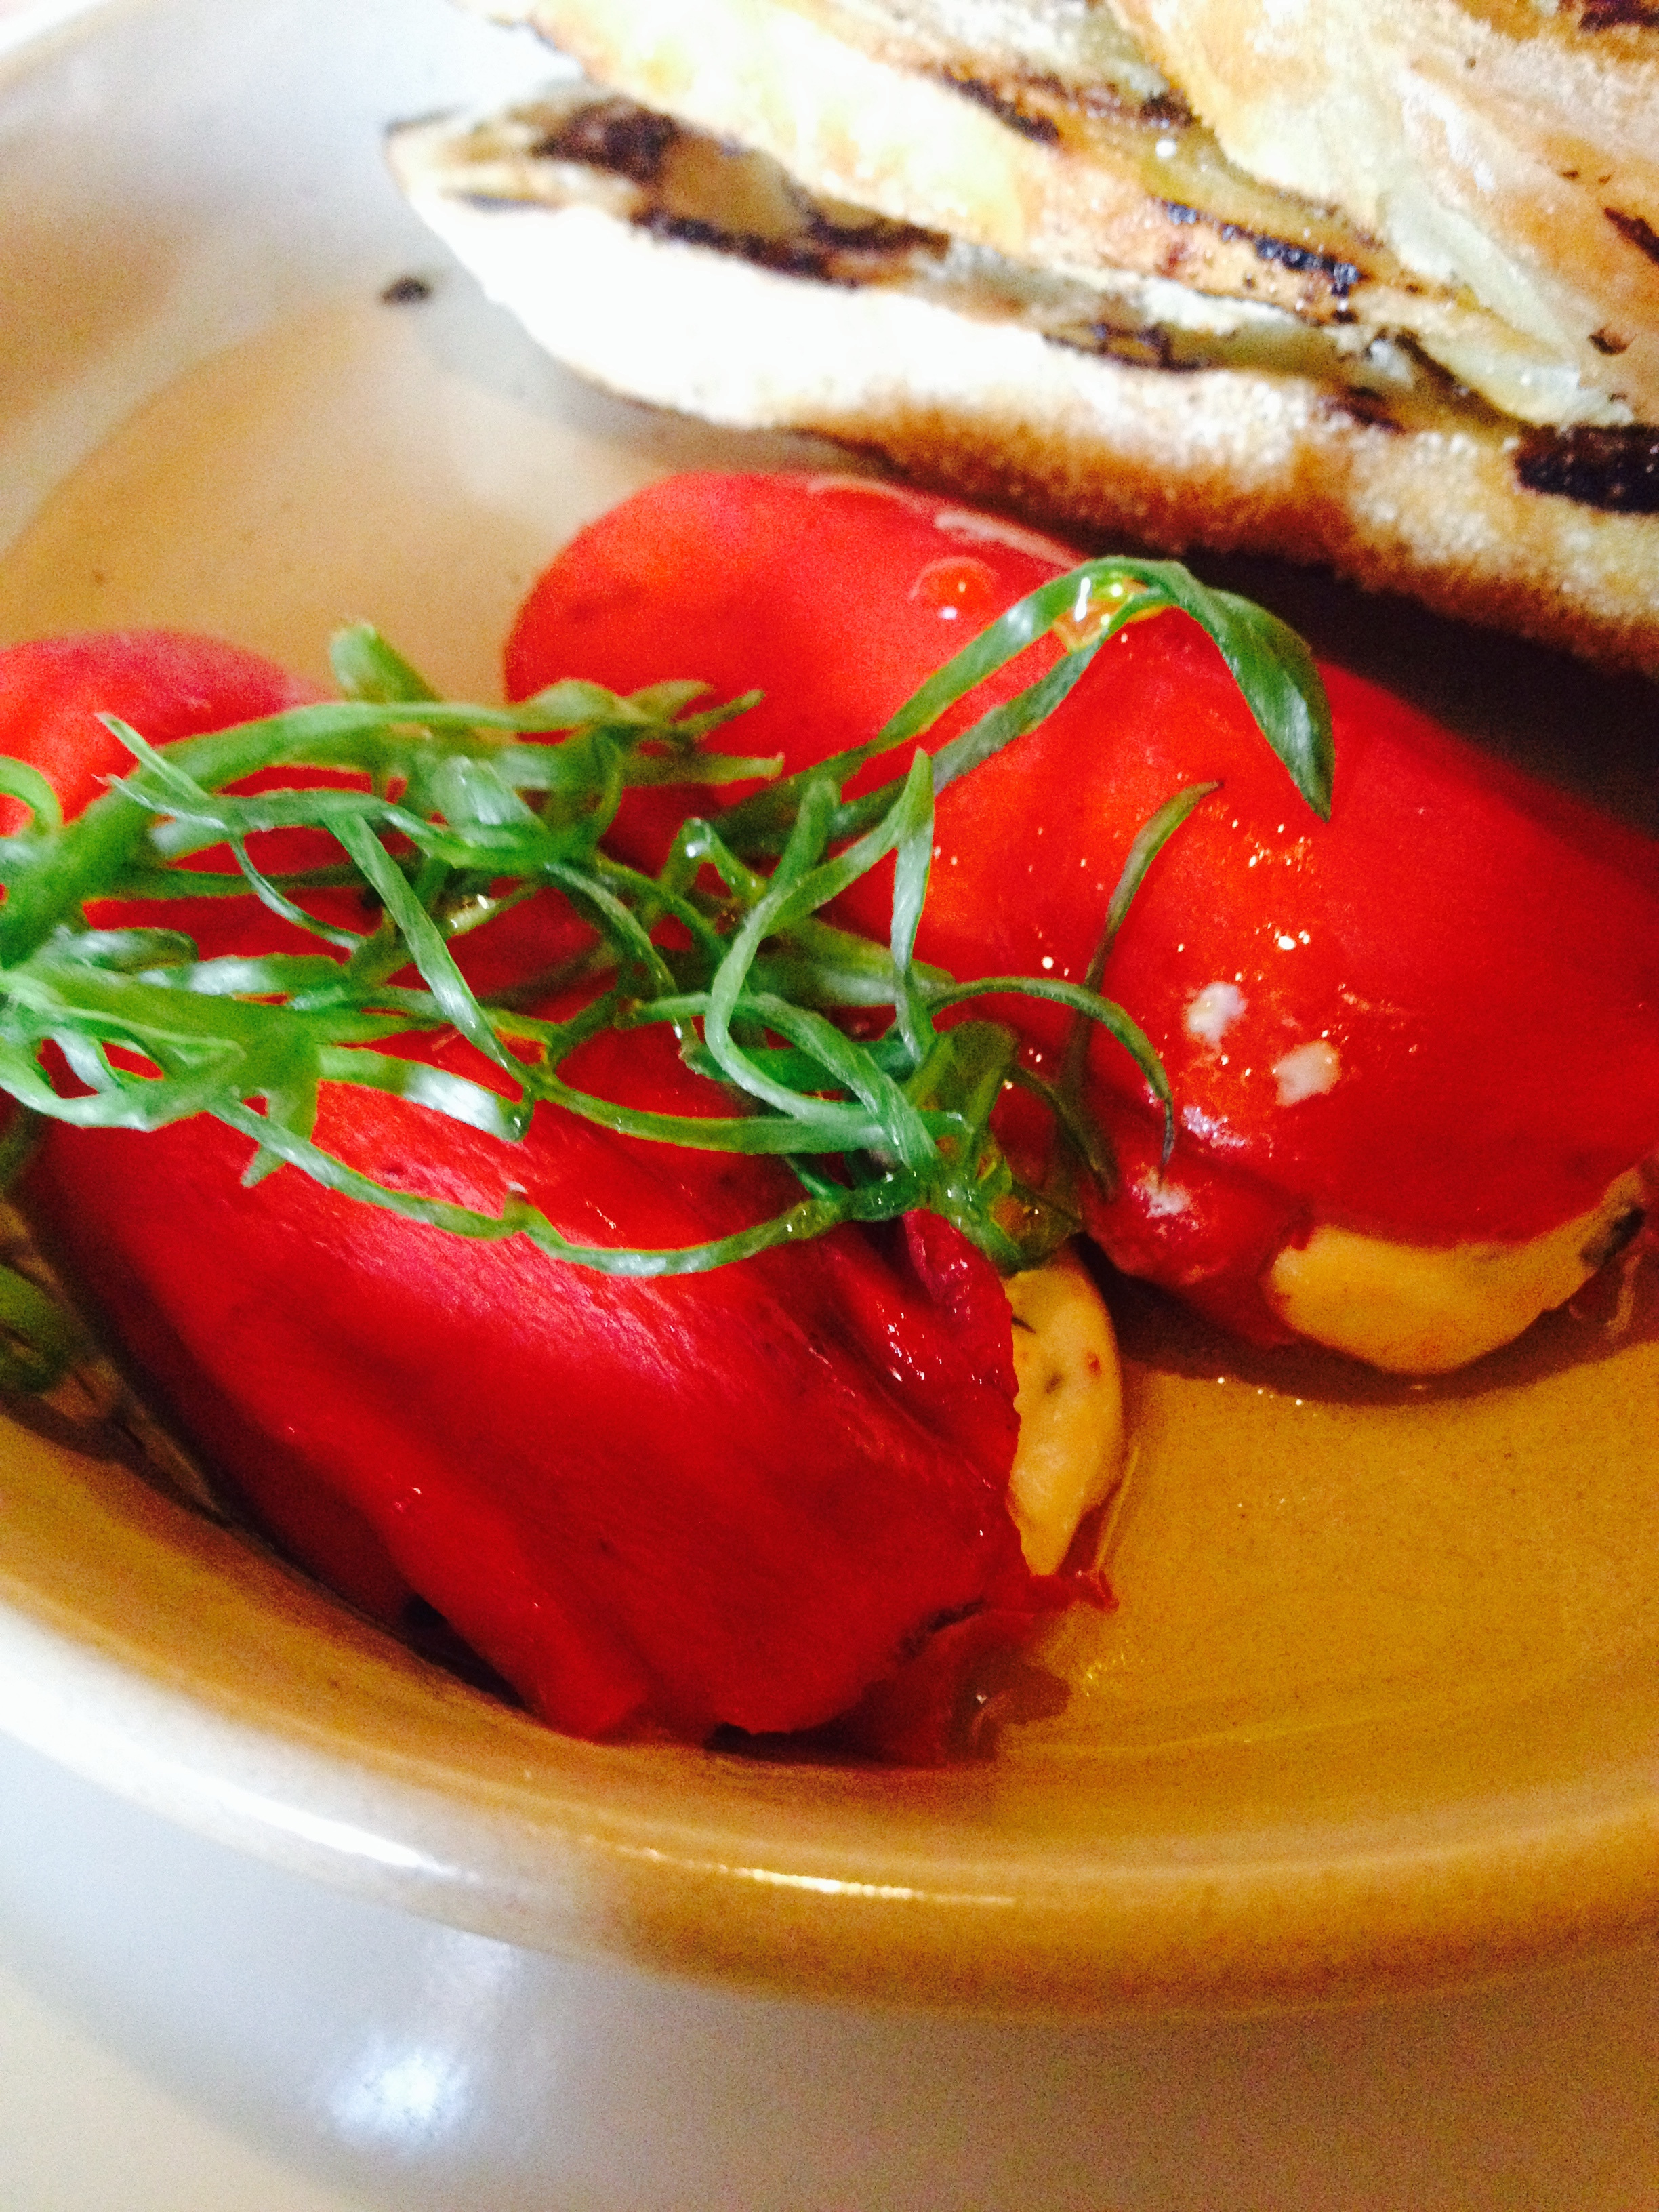 Stuffed Piquillo Peppers with herbed Spanish goat cheese and grilled bread.